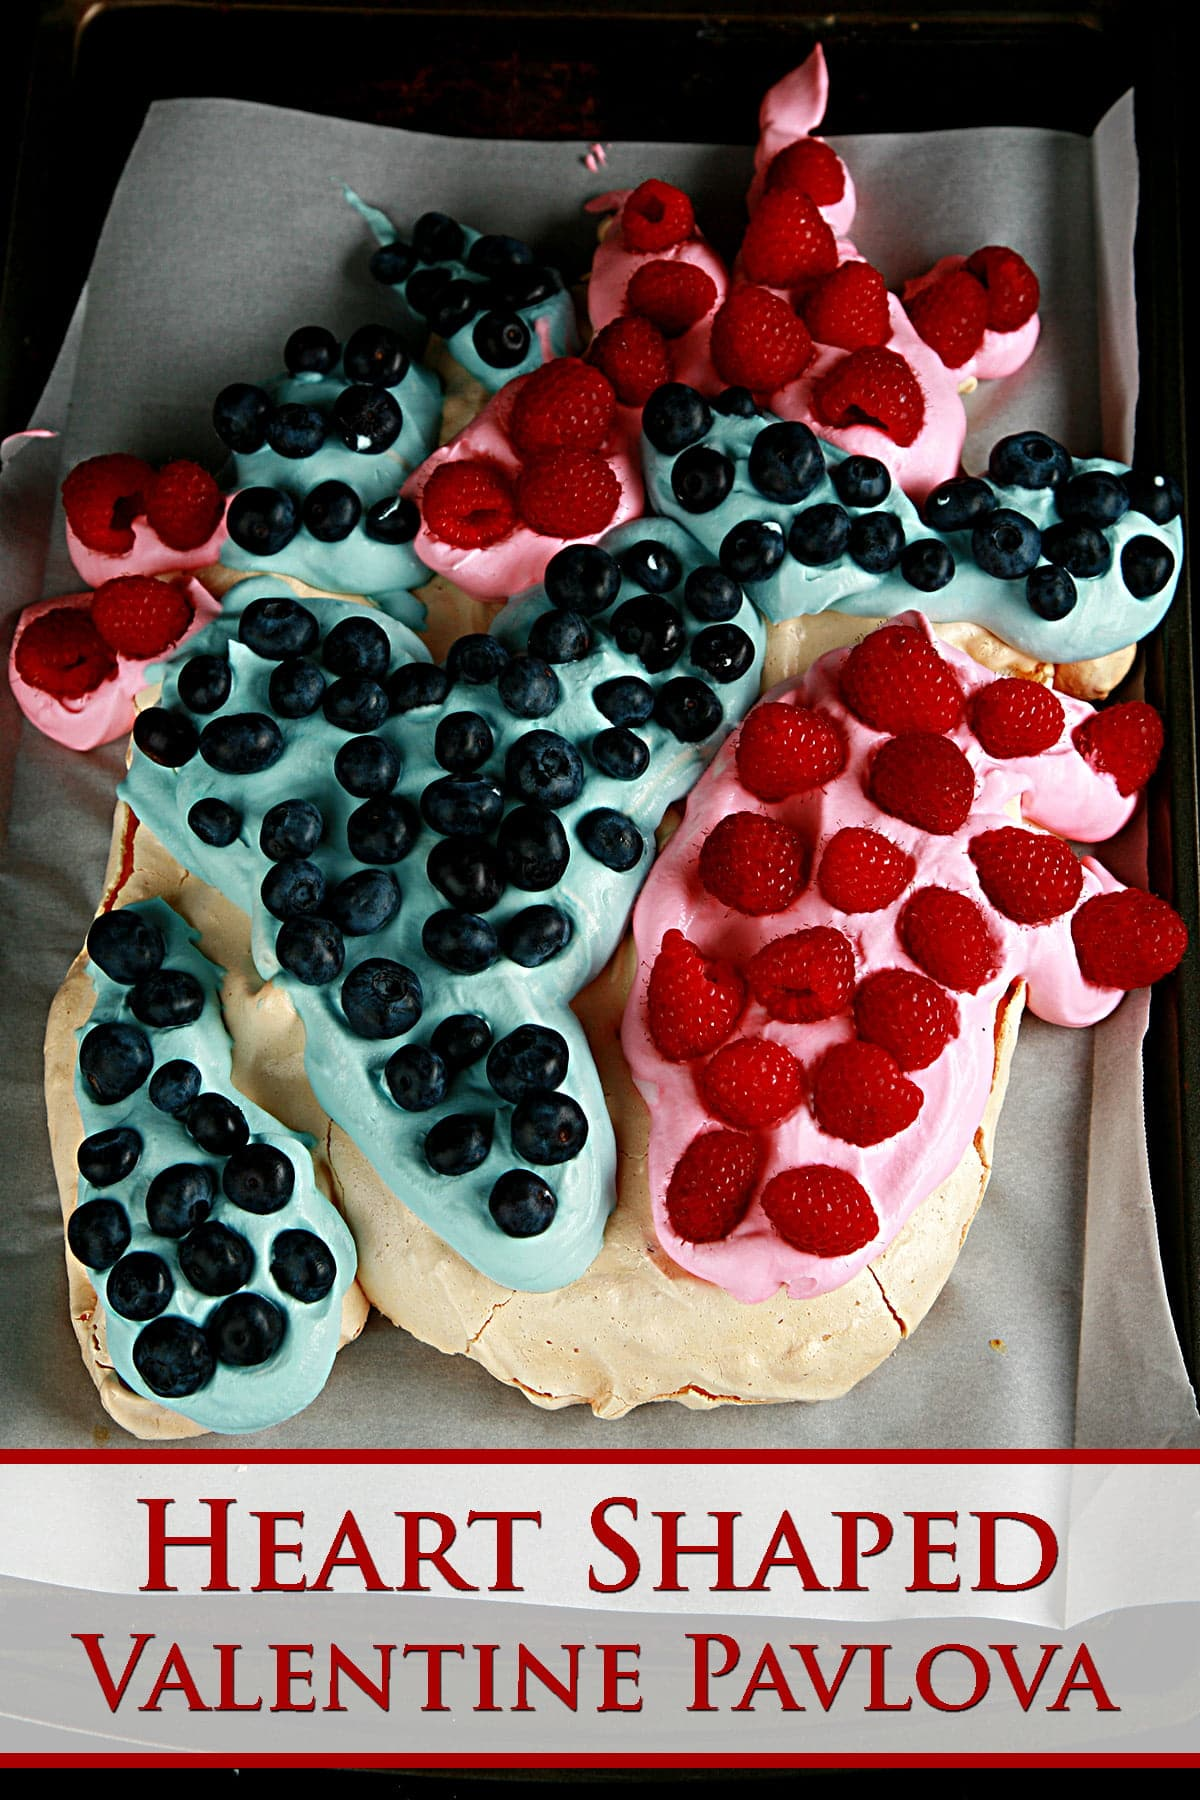 A heart shaped pavlova, with blue and red whipped cream, raspberries, and blueberries.